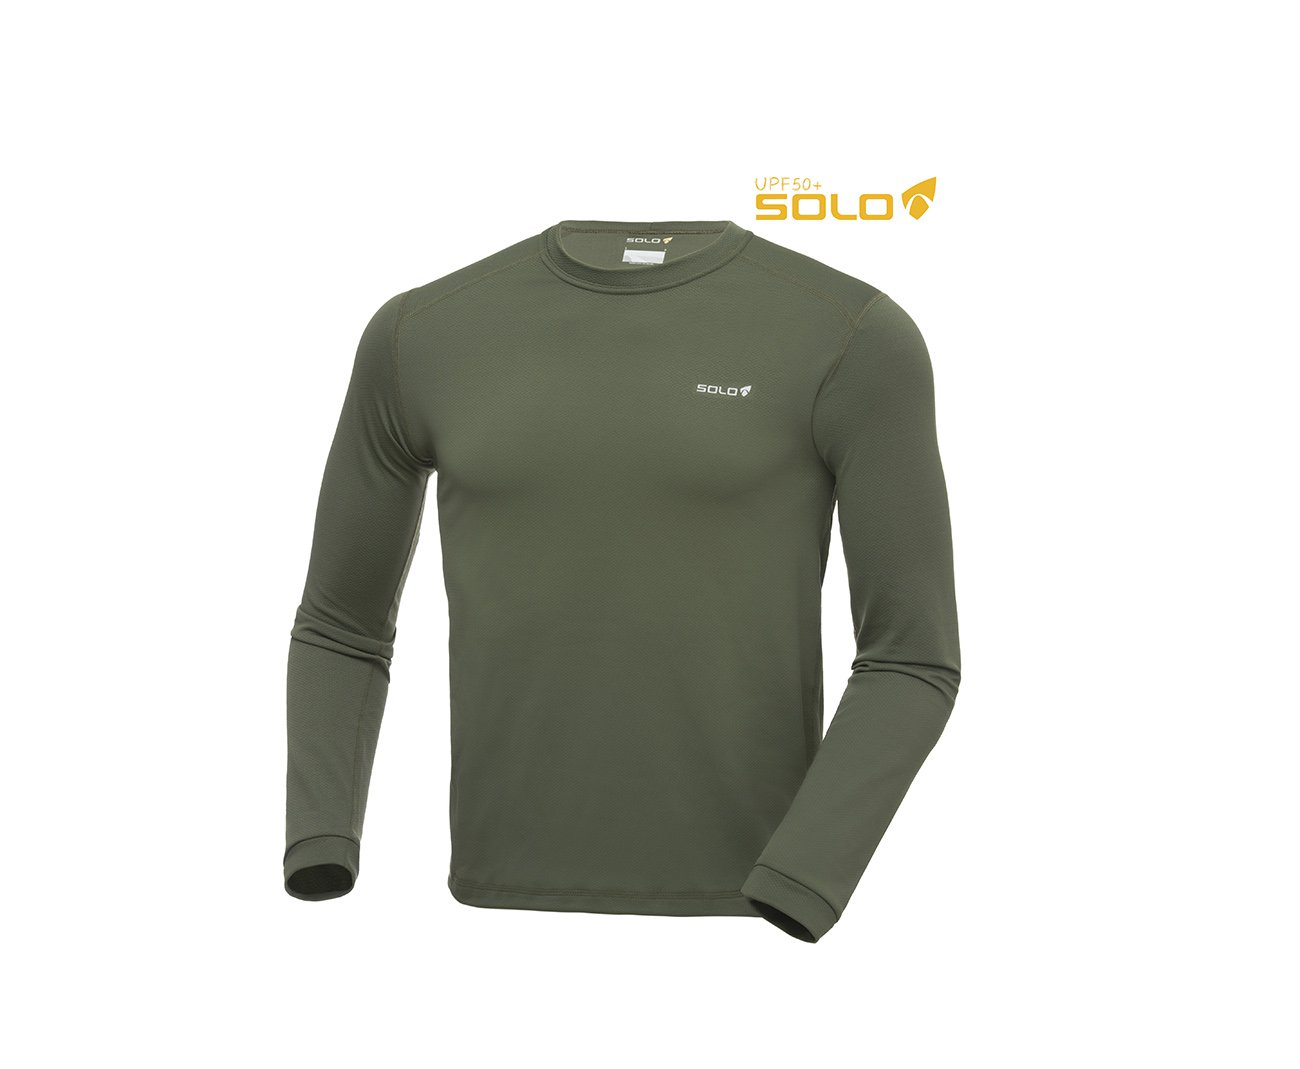 Blusa X-thermo Ds T-shirt Verde Oliva - Solo